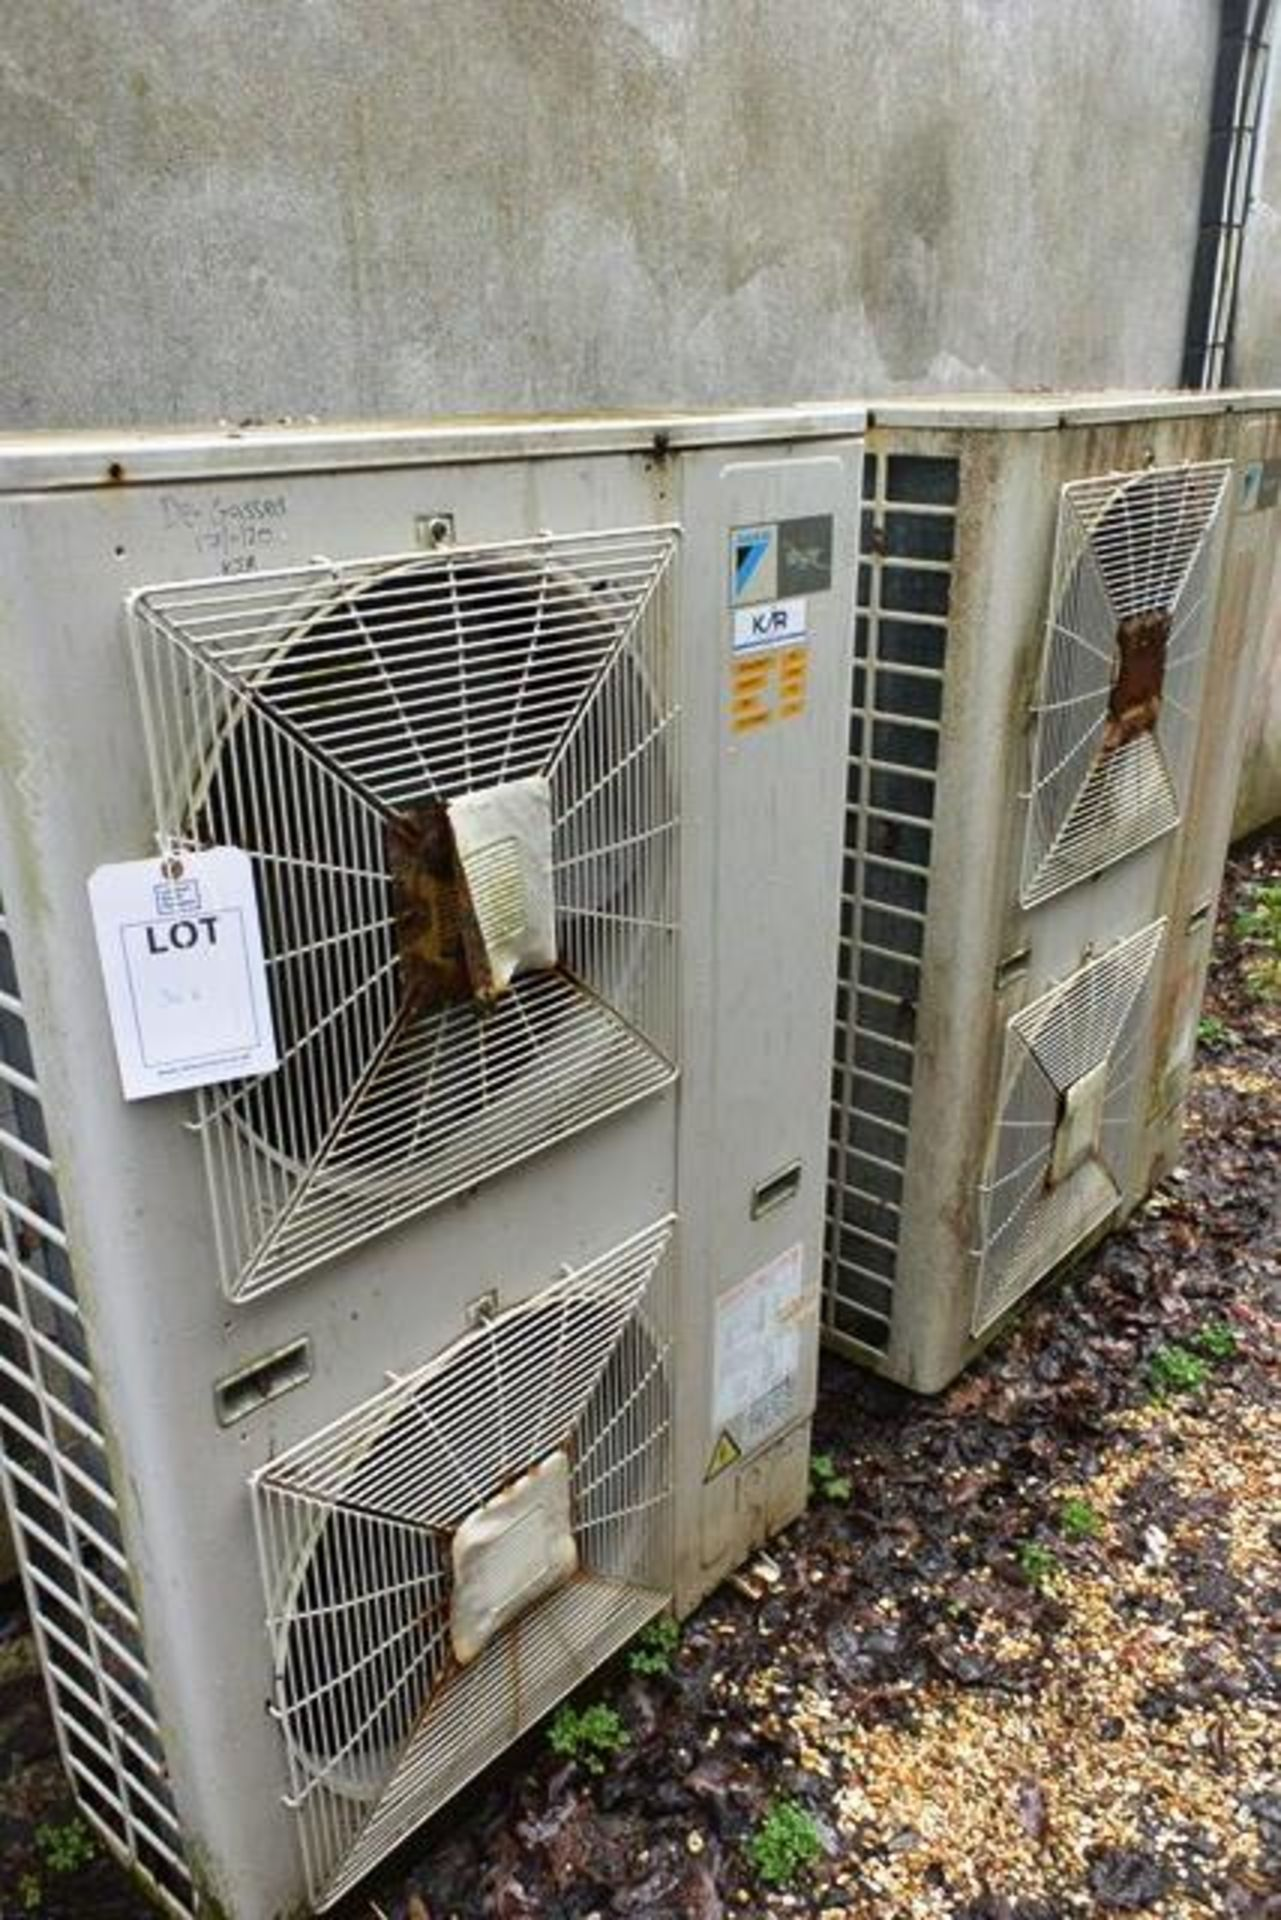 Daiken Skyair RY 125 DJ721, serial no. 3603233 (1996), refrigerant R22 (Please note: units have been